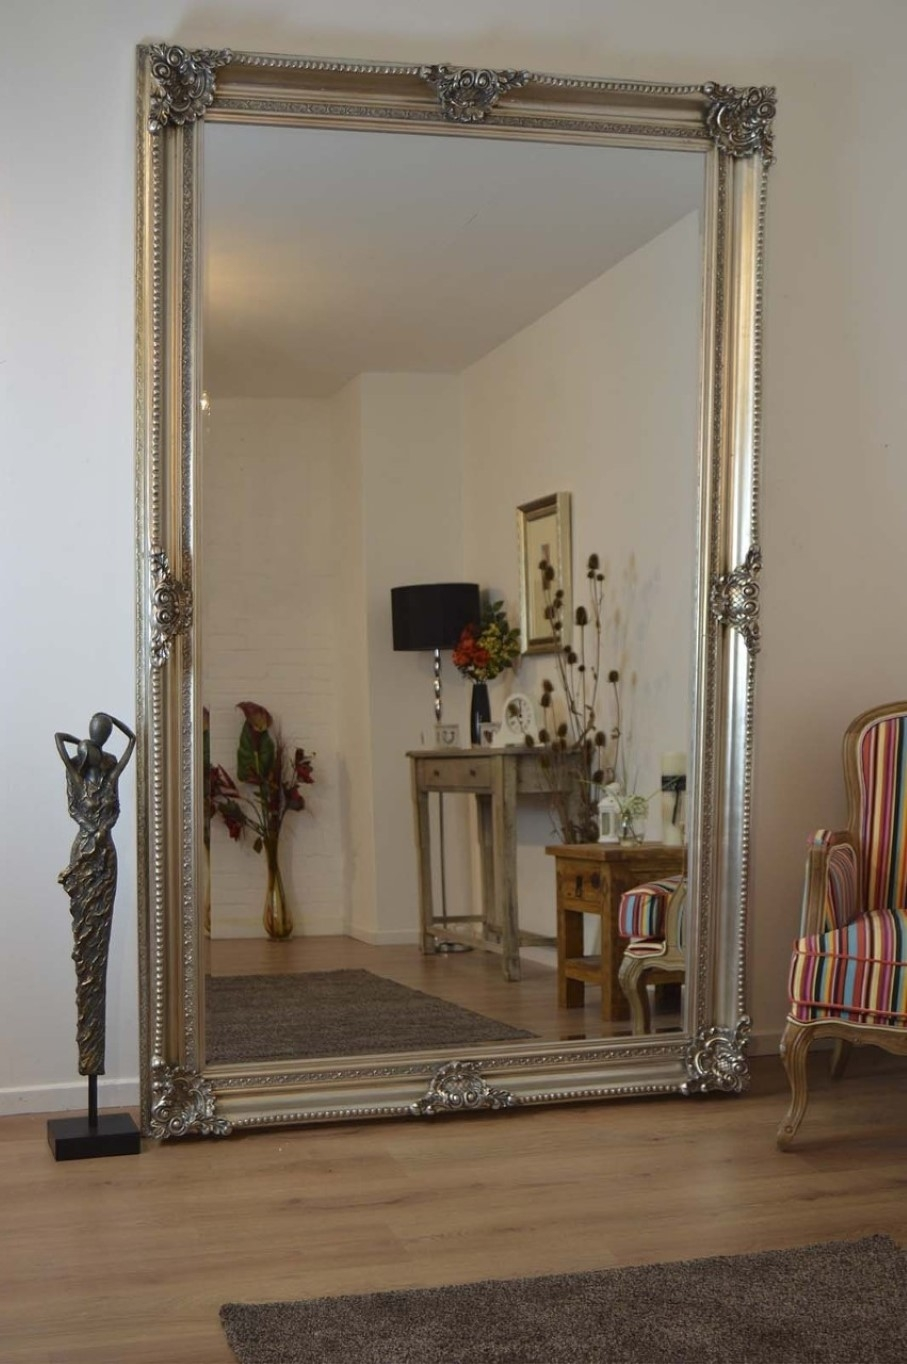 Fine Decoration Huge Wall Mirror Cozy Design Silver Ornate Huge In Huge Ornate Mirror (Image 5 of 15)